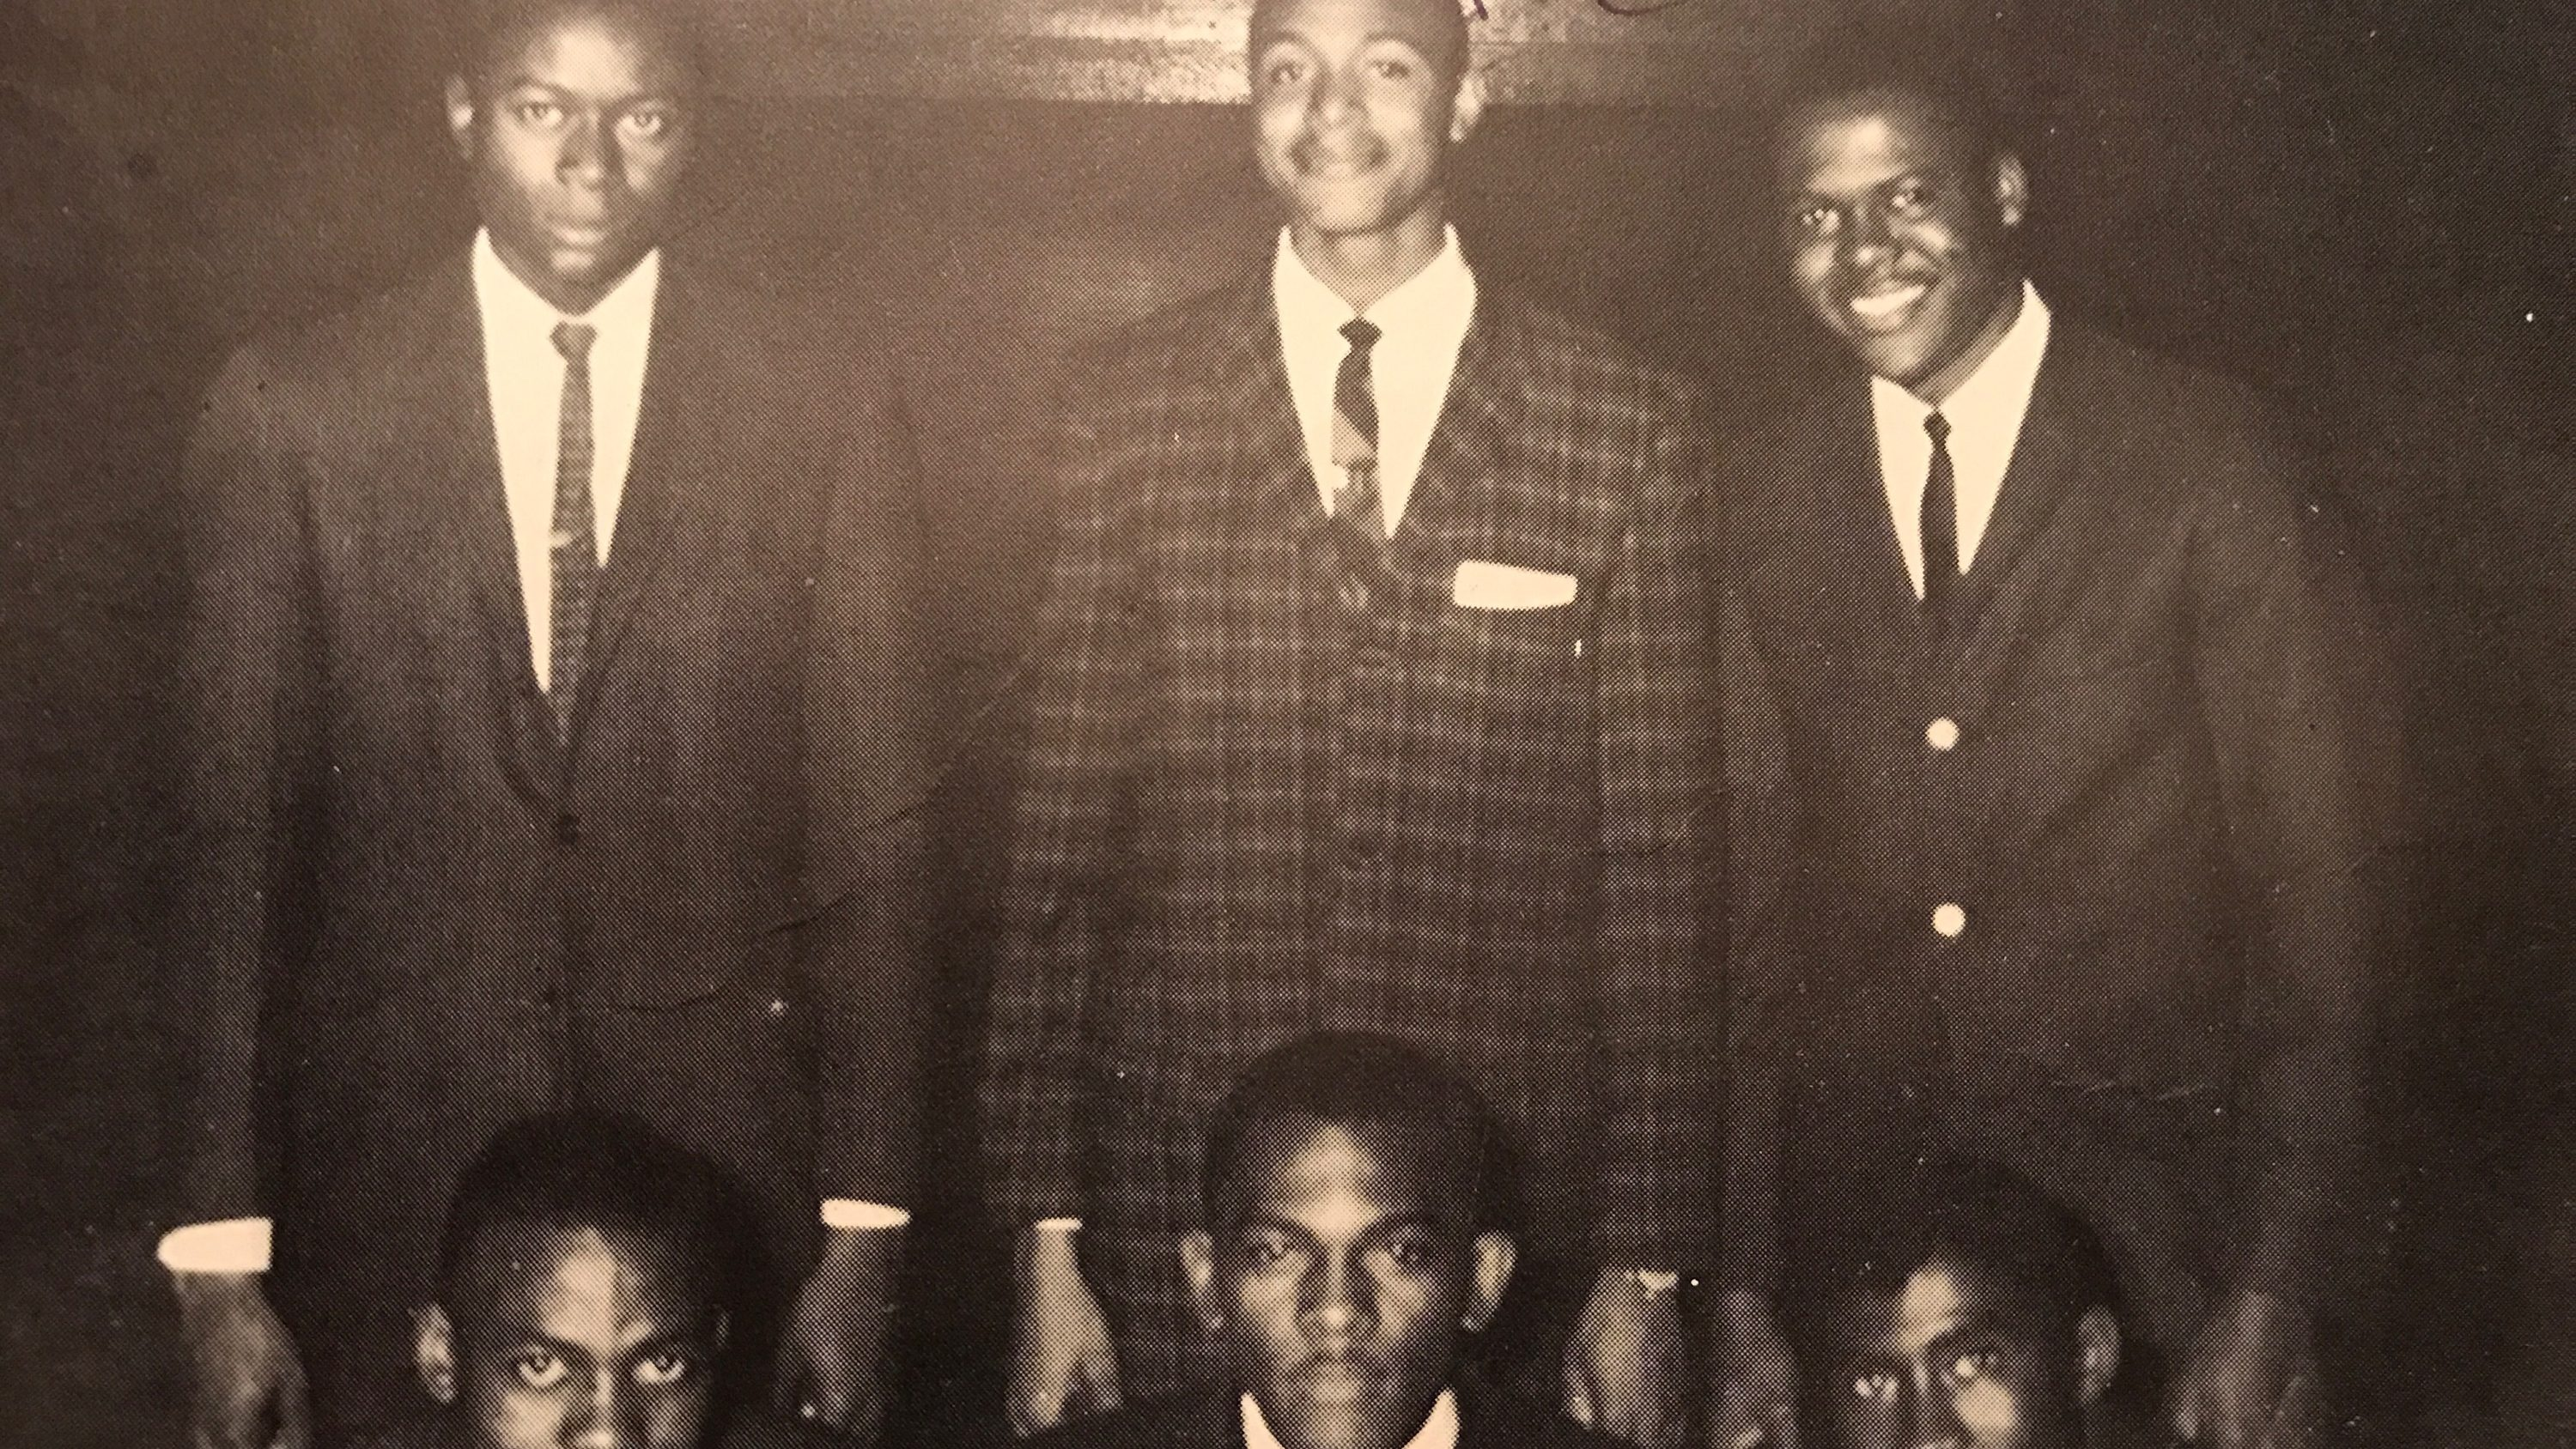 A 20-year-old Moore, top center, poses with fellow members of the Fayetteville sit-in planning committee.